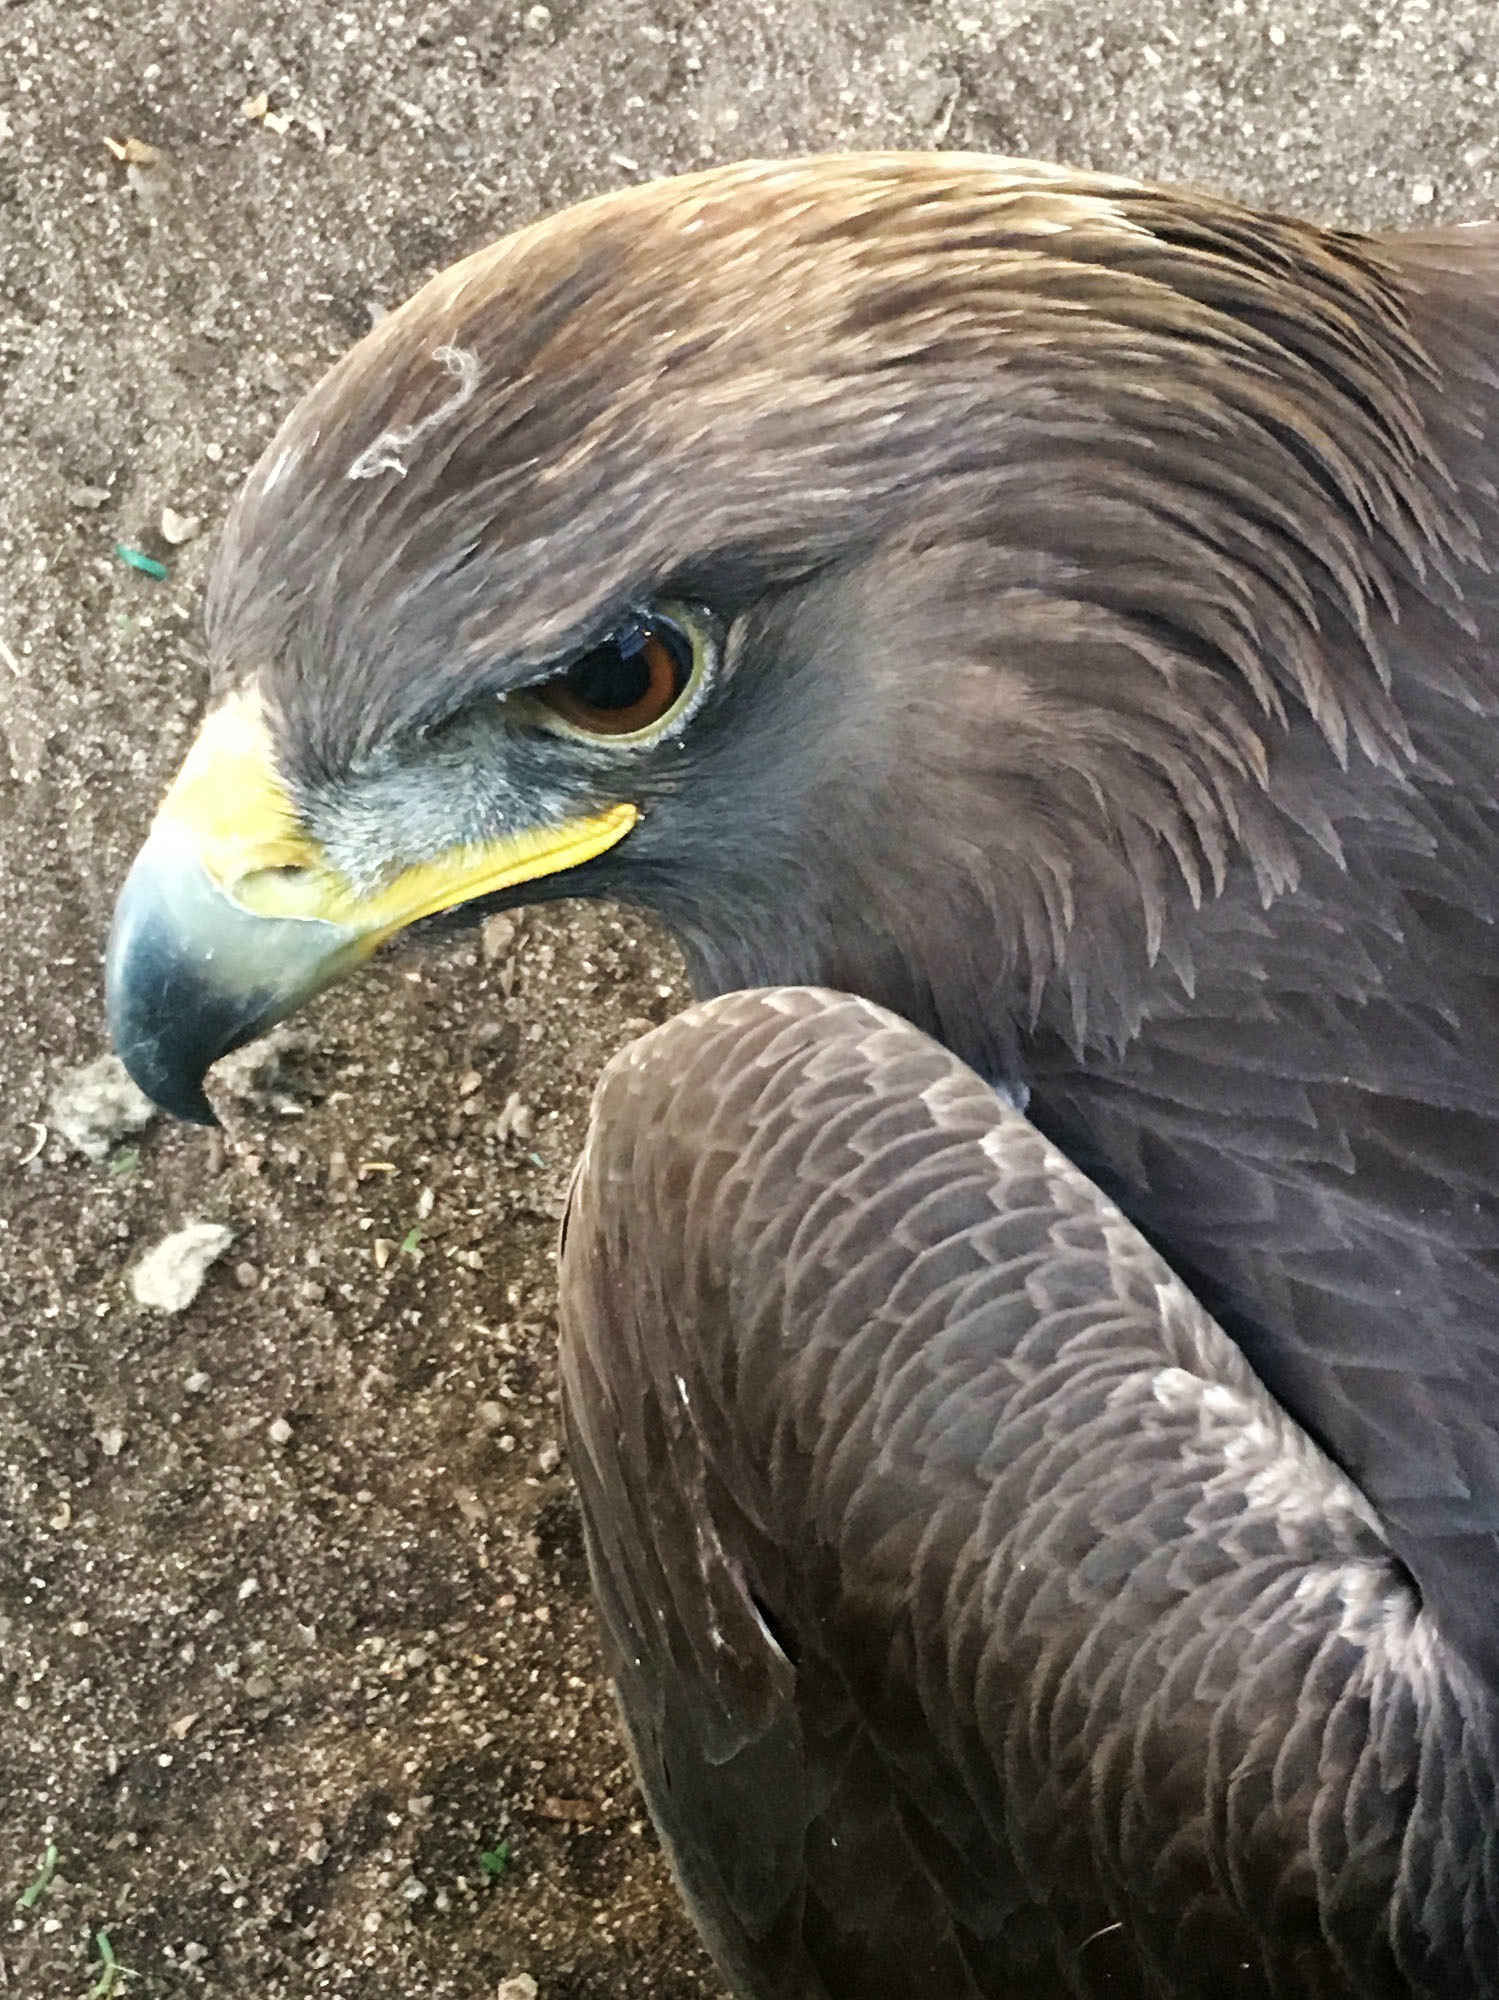 Donate Now to Help Oro, a West Nile Virus Infected Golden Eagle image